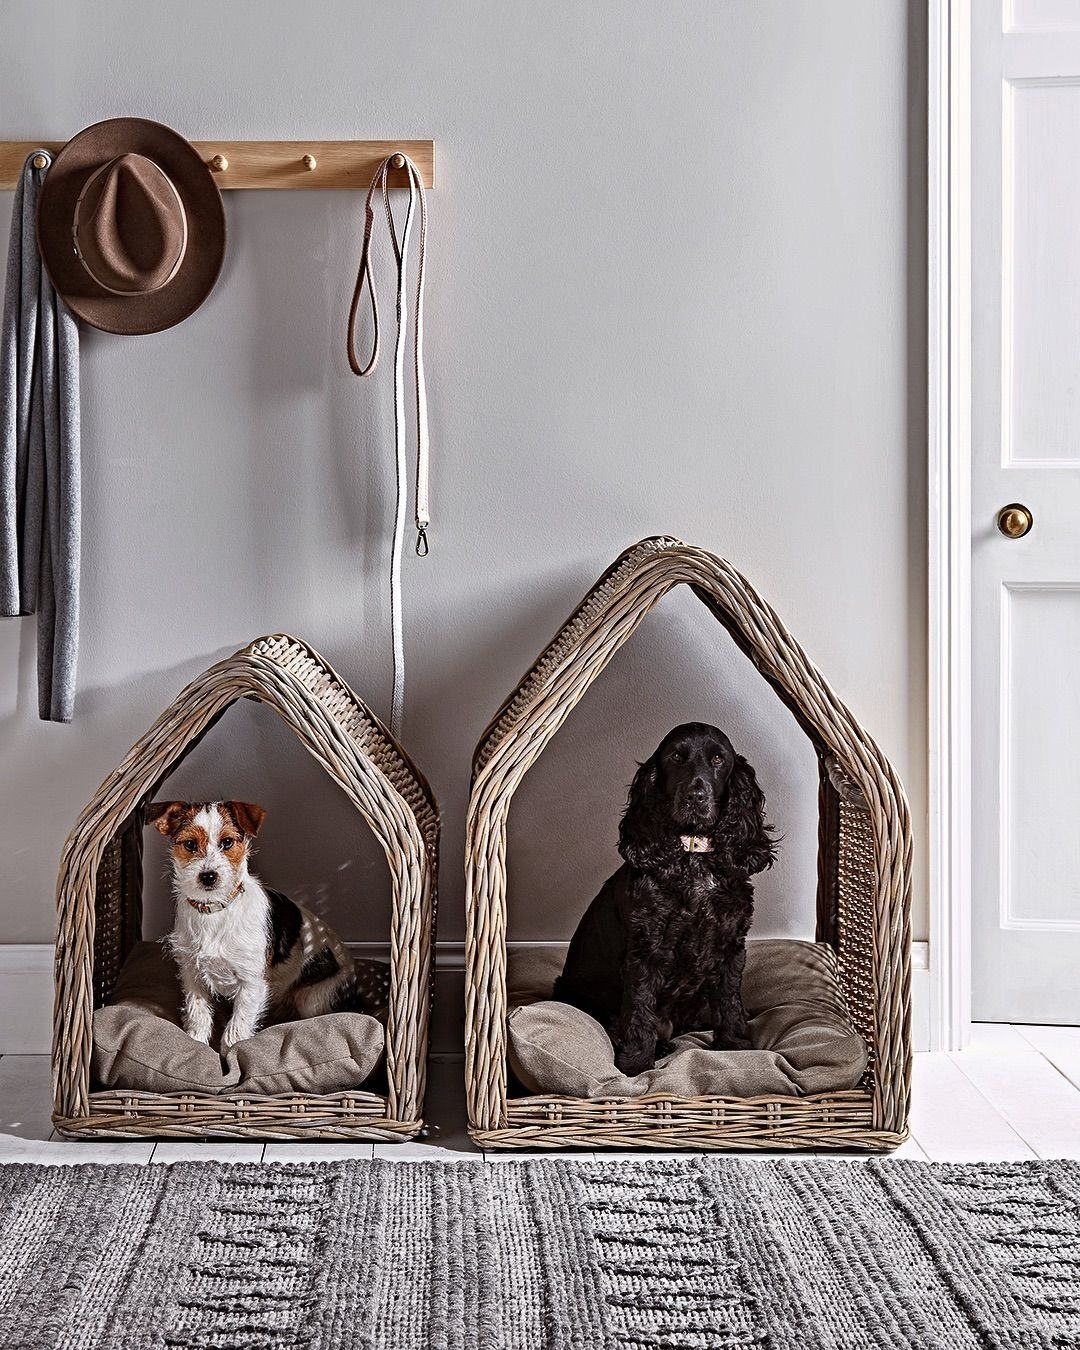 The Sunday Times Home On Instagram The New Collection Of Pet Beds And Accessories From Coxandcox Shares The Same Style An Pet Beds Dog House Bed Dog Bed Mat